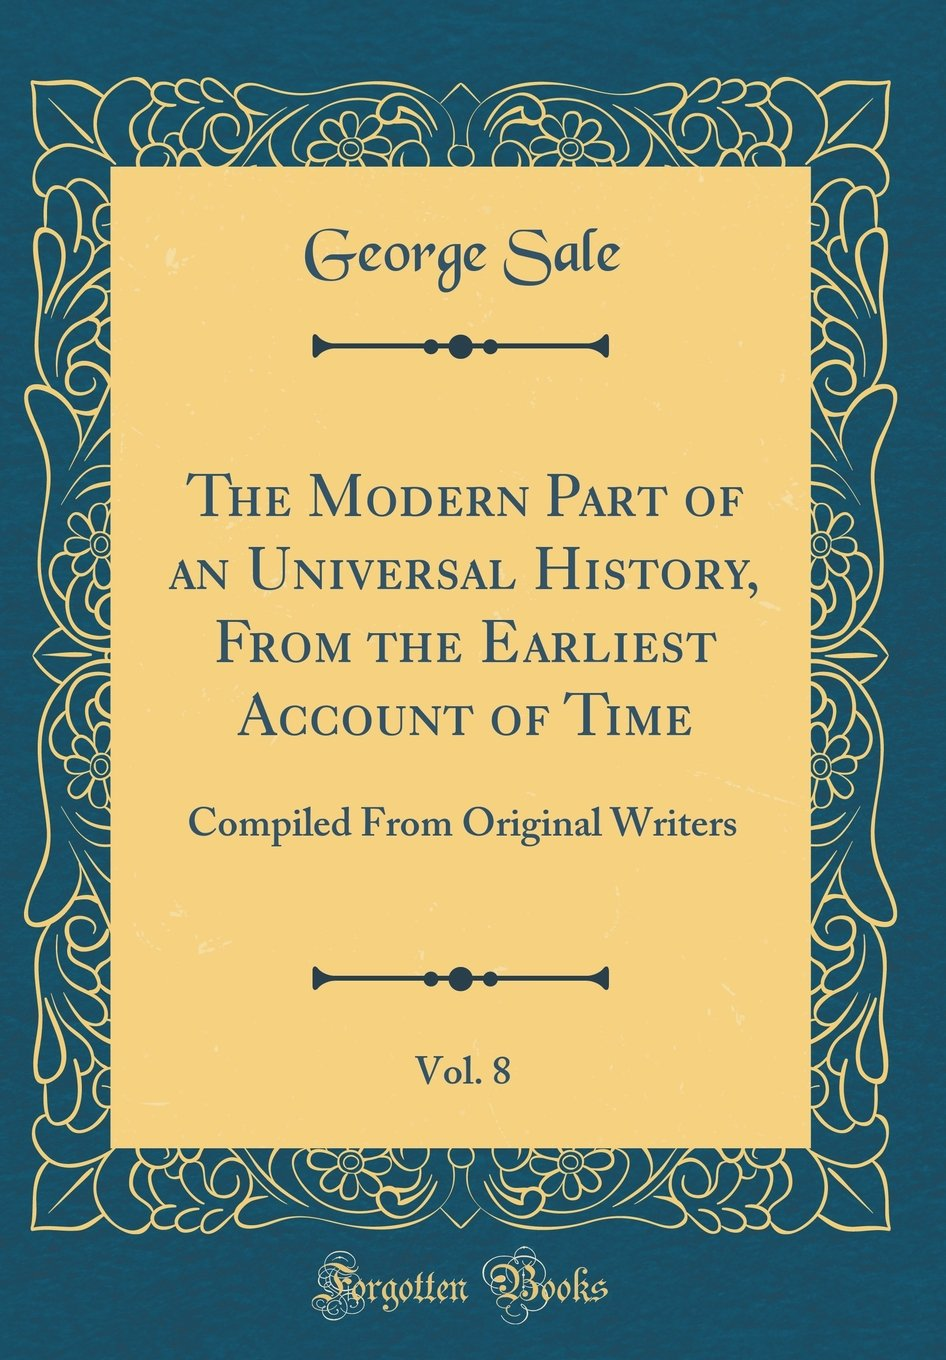 Download The Modern Part of an Universal History, From the Earliest Account of Time, Vol. 8: Compiled From Original Writers (Classic Reprint) PDF